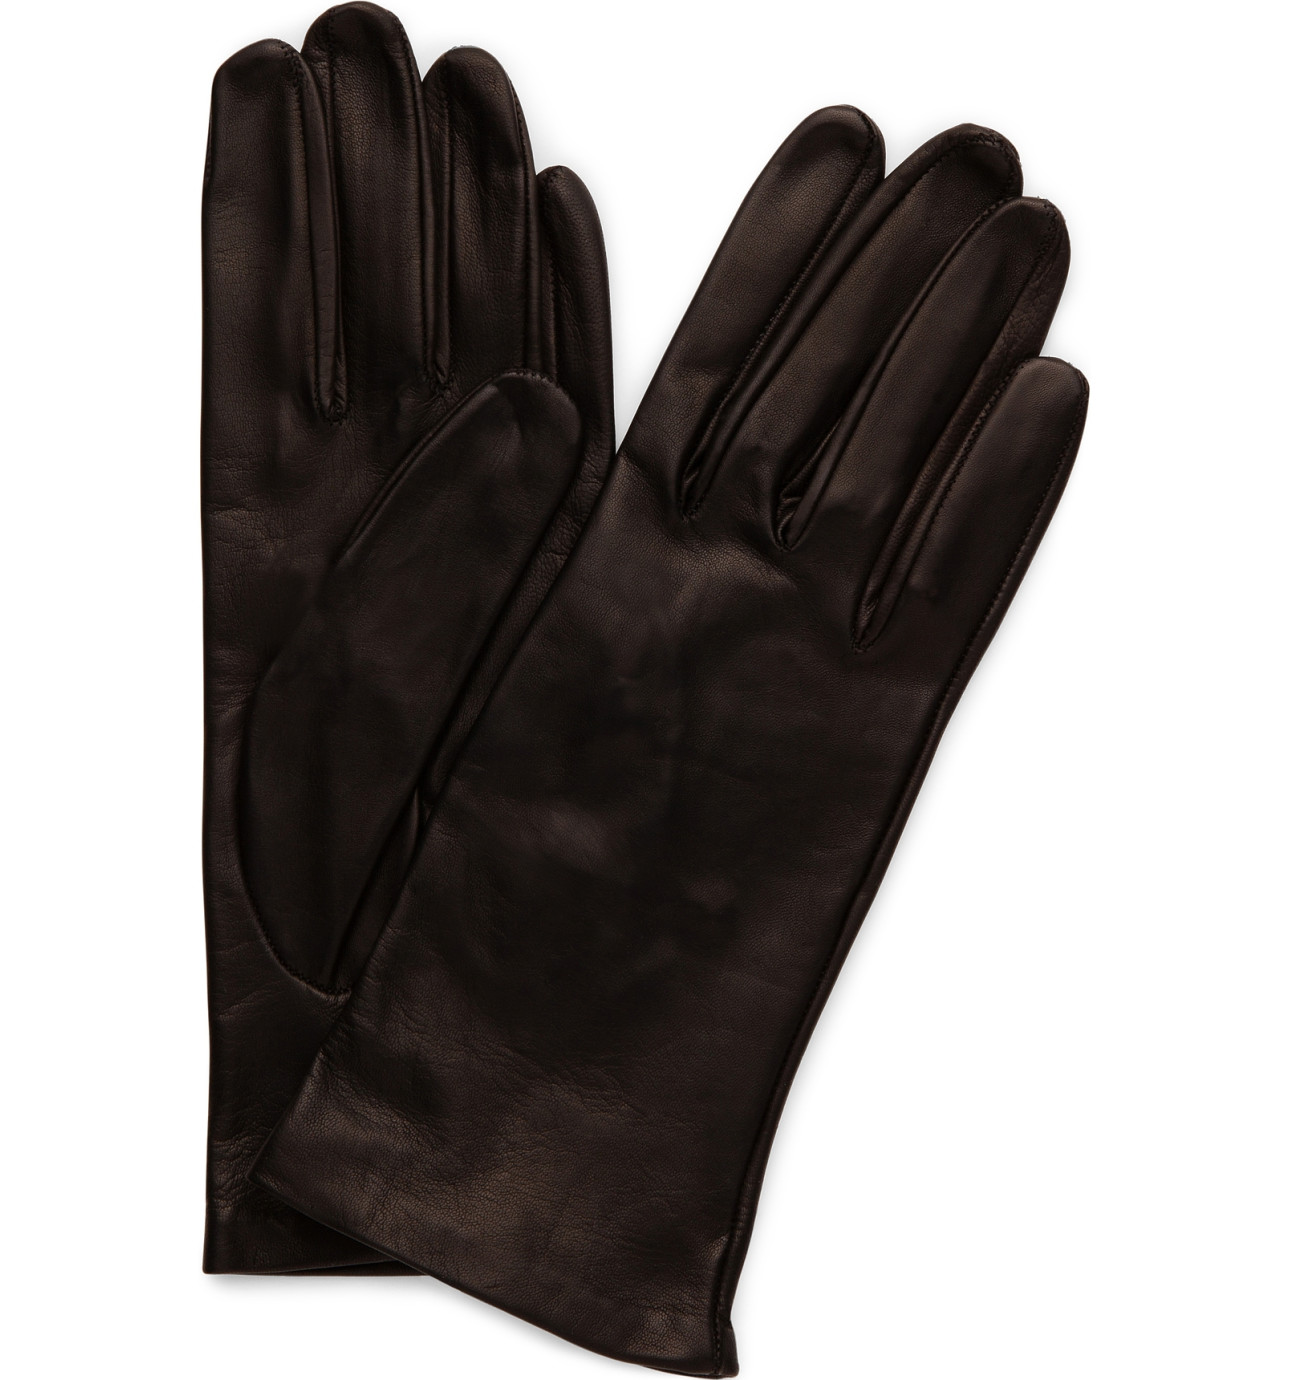 Ladies leather gloves australia - Milana 2 Button Silk Glove